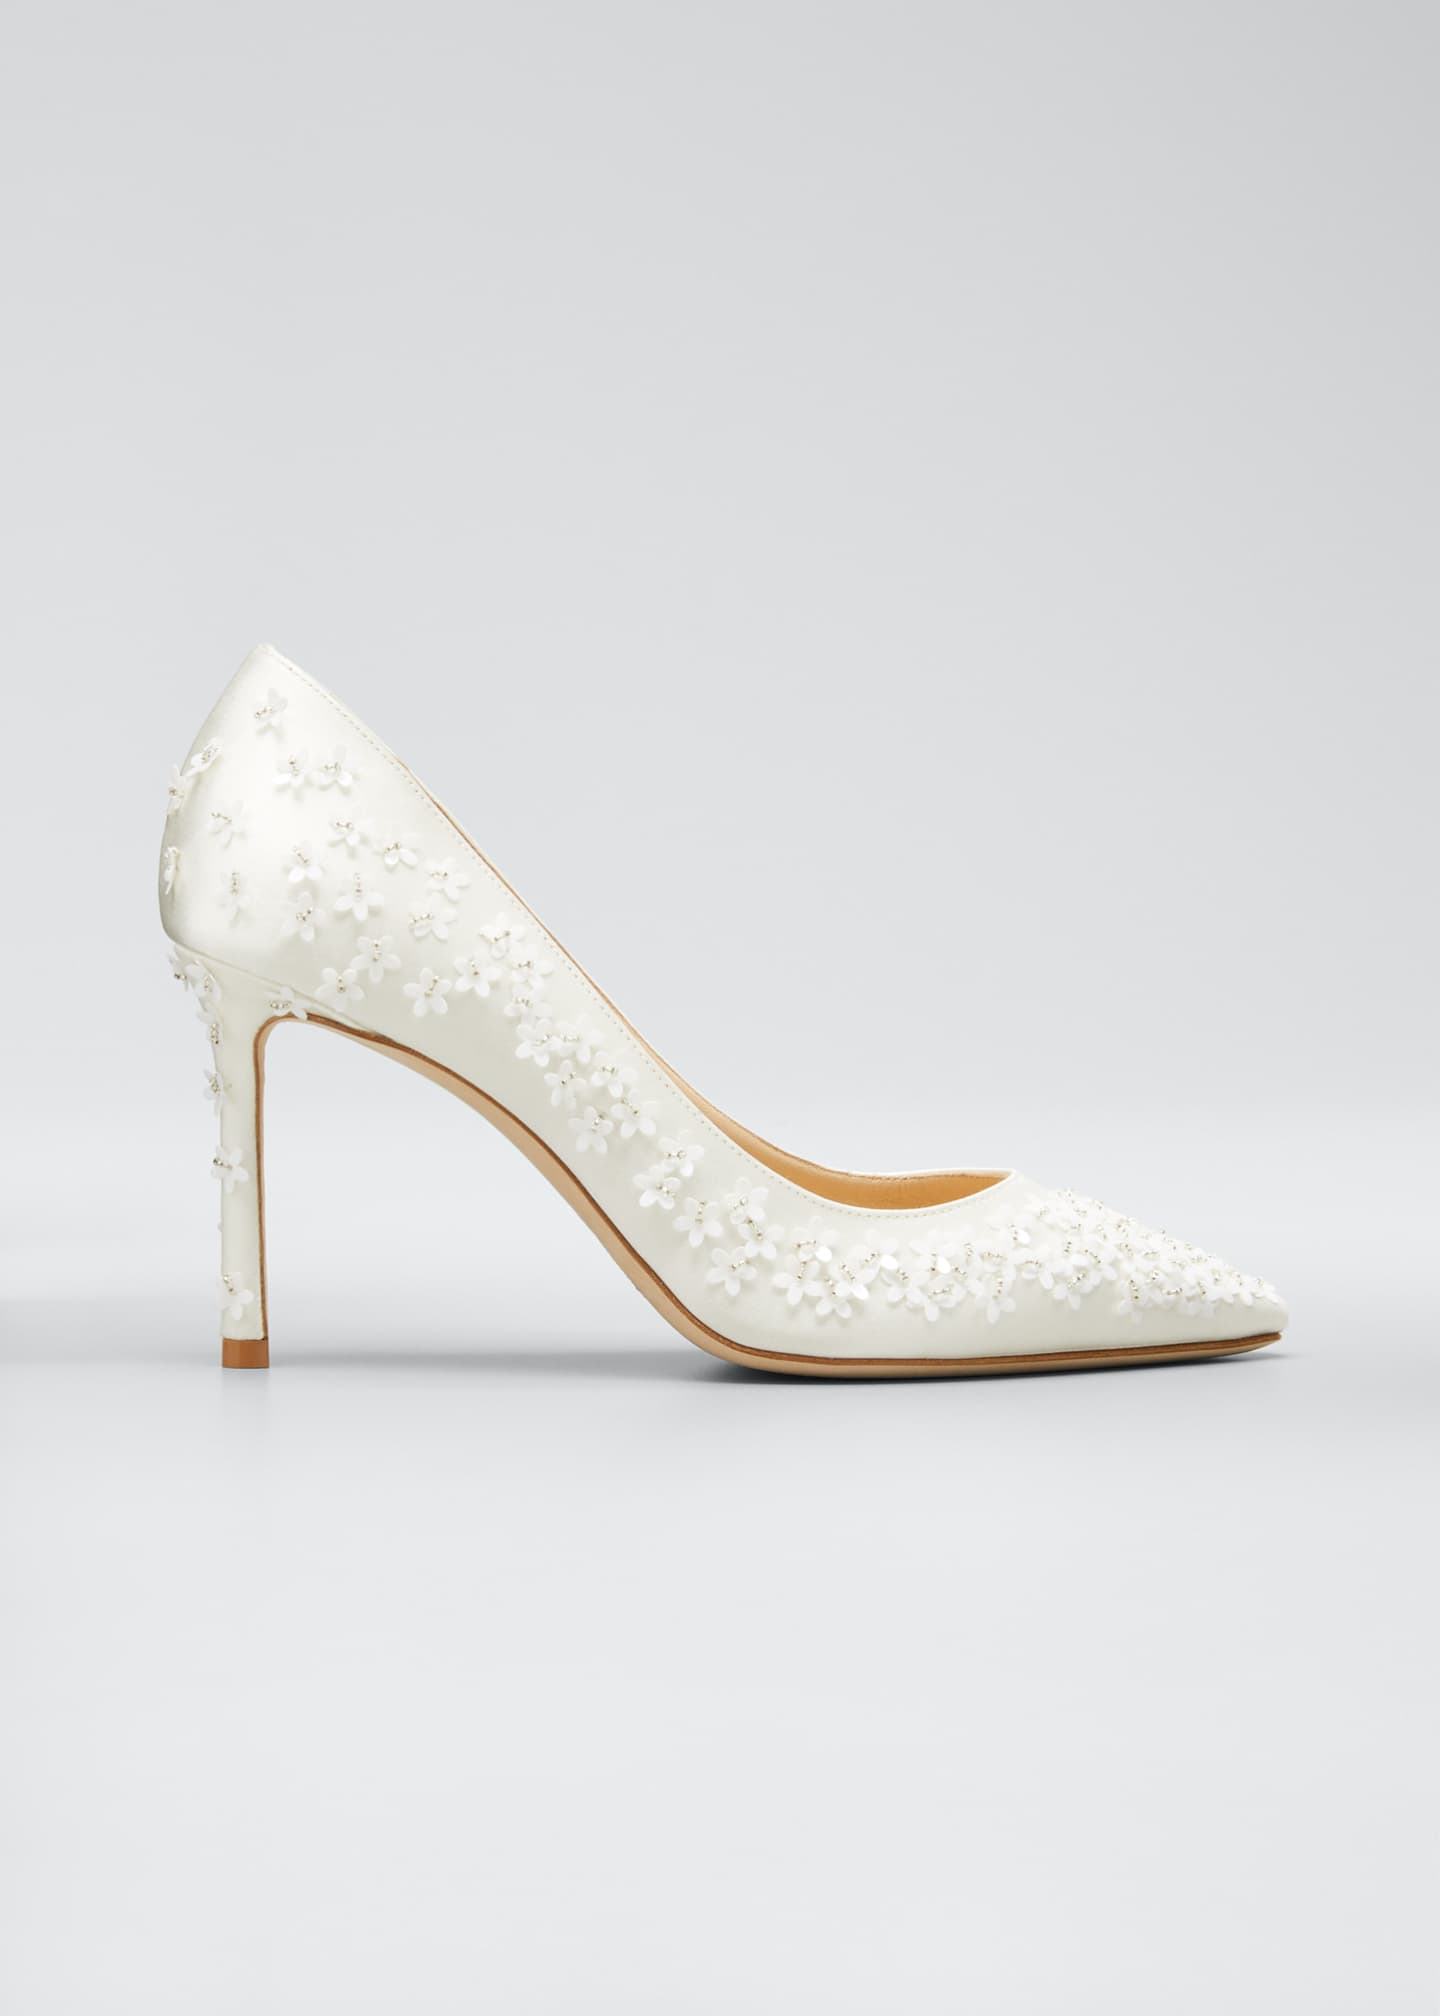 Jimmy Choo Romy Flower Studded Satin Pumps